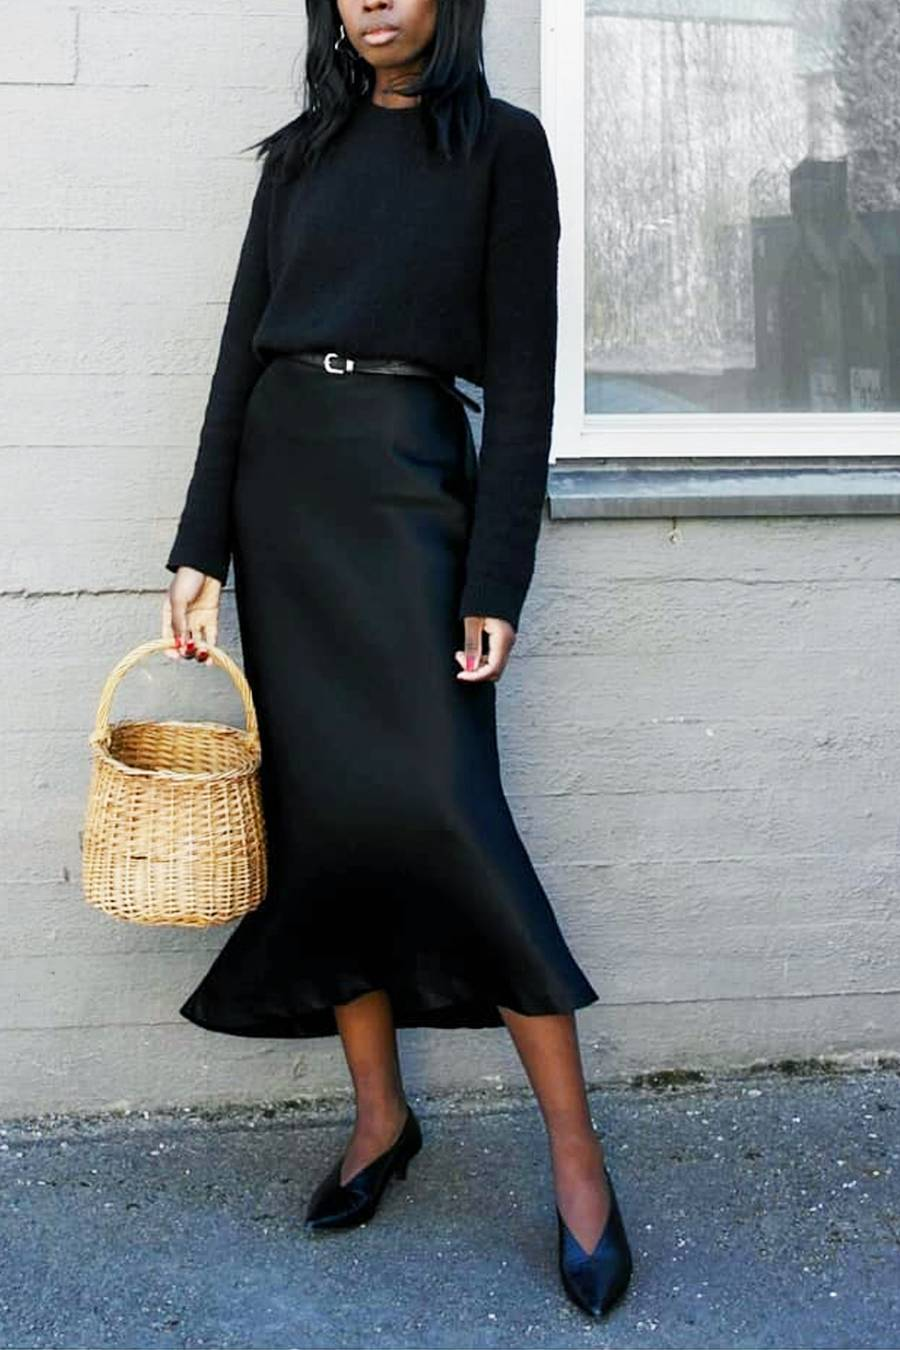 Must-have Skirts To Add To Your Capsule Wardrobe